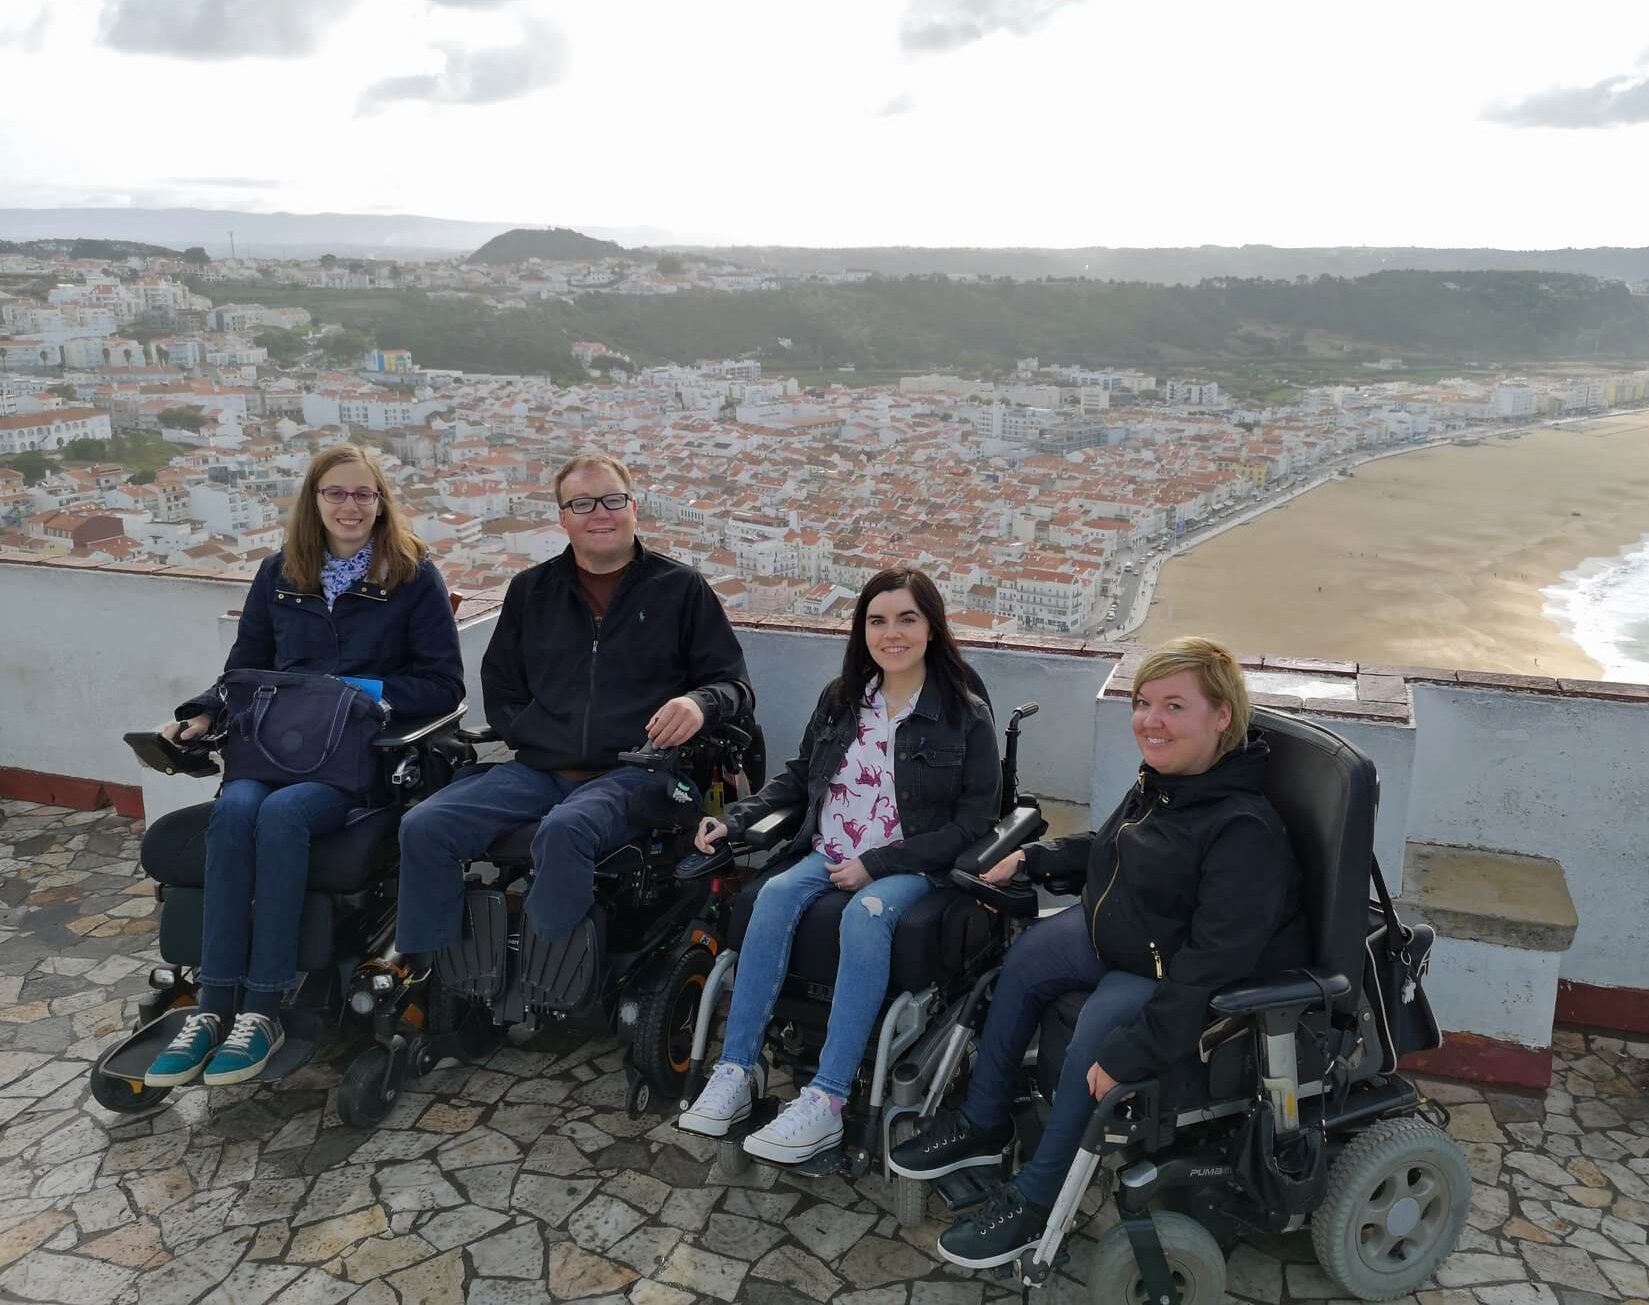 Emma with three accessible travel bloggers who are all in powered wheelchairs. Blandine, John, Emma and Sanna.